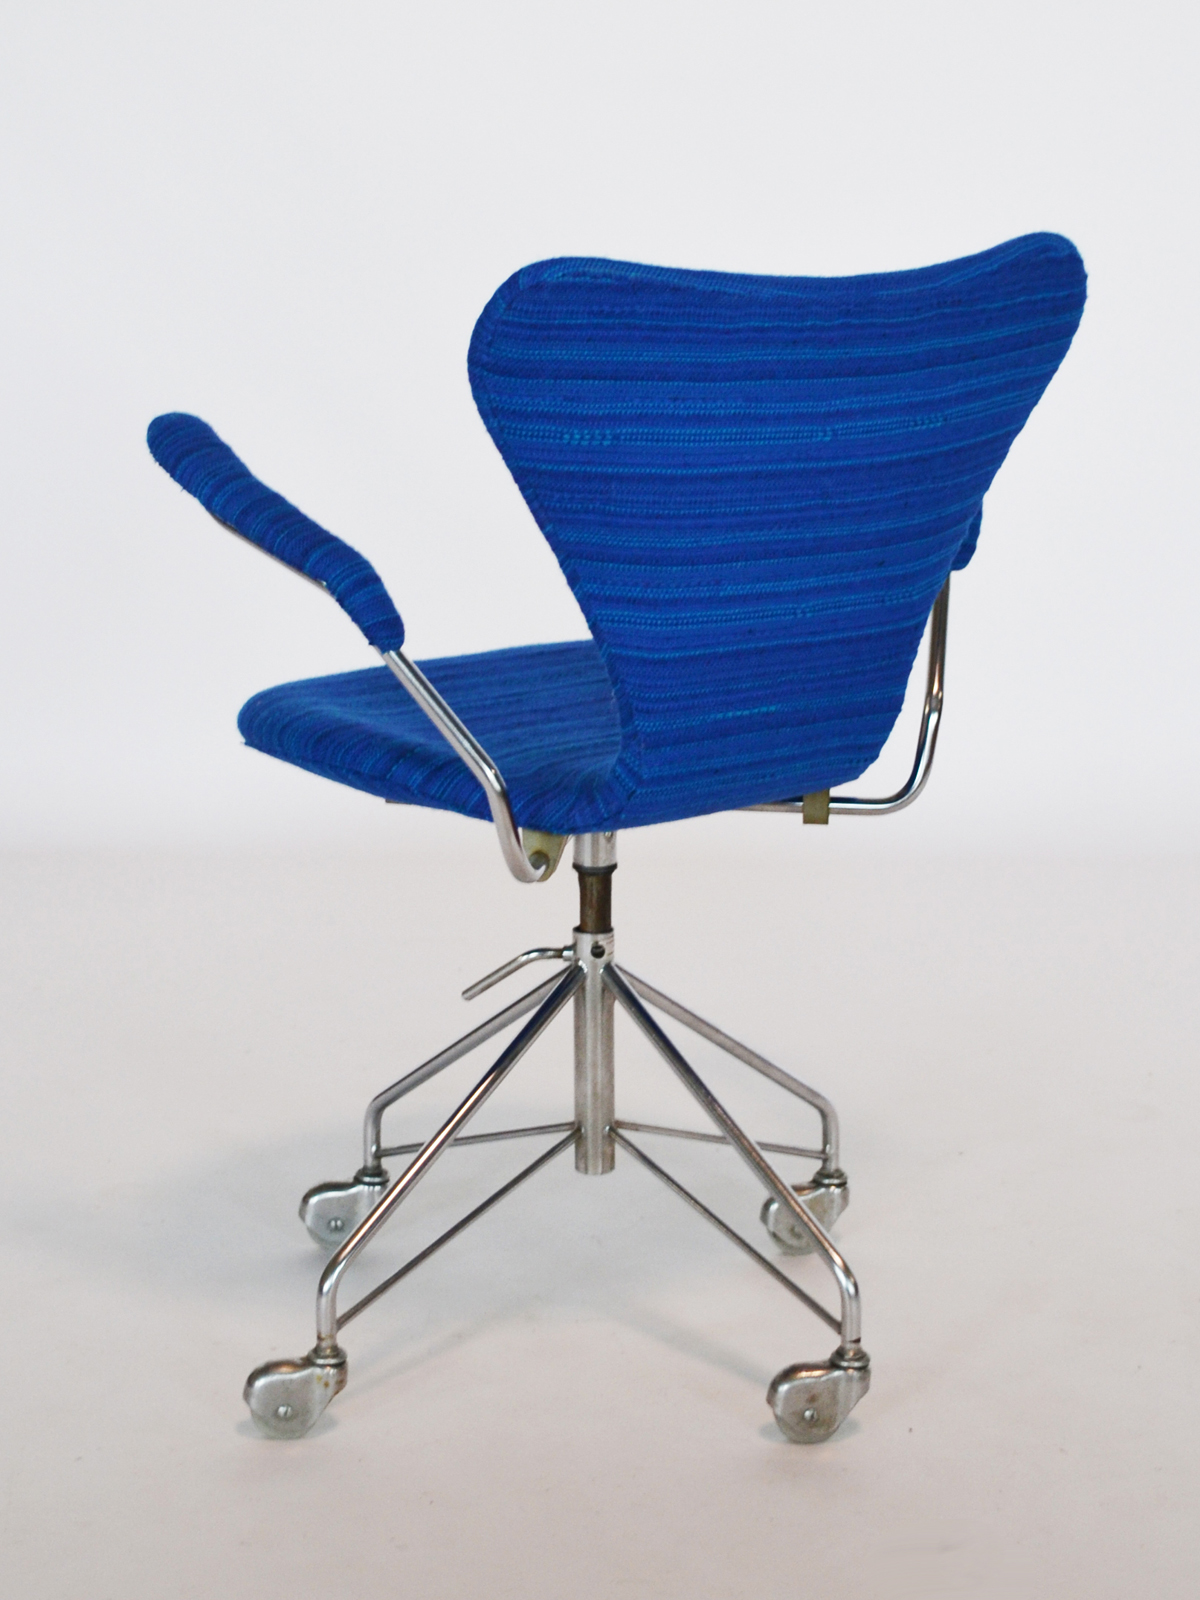 Arne Jacobsen Sevener Chair